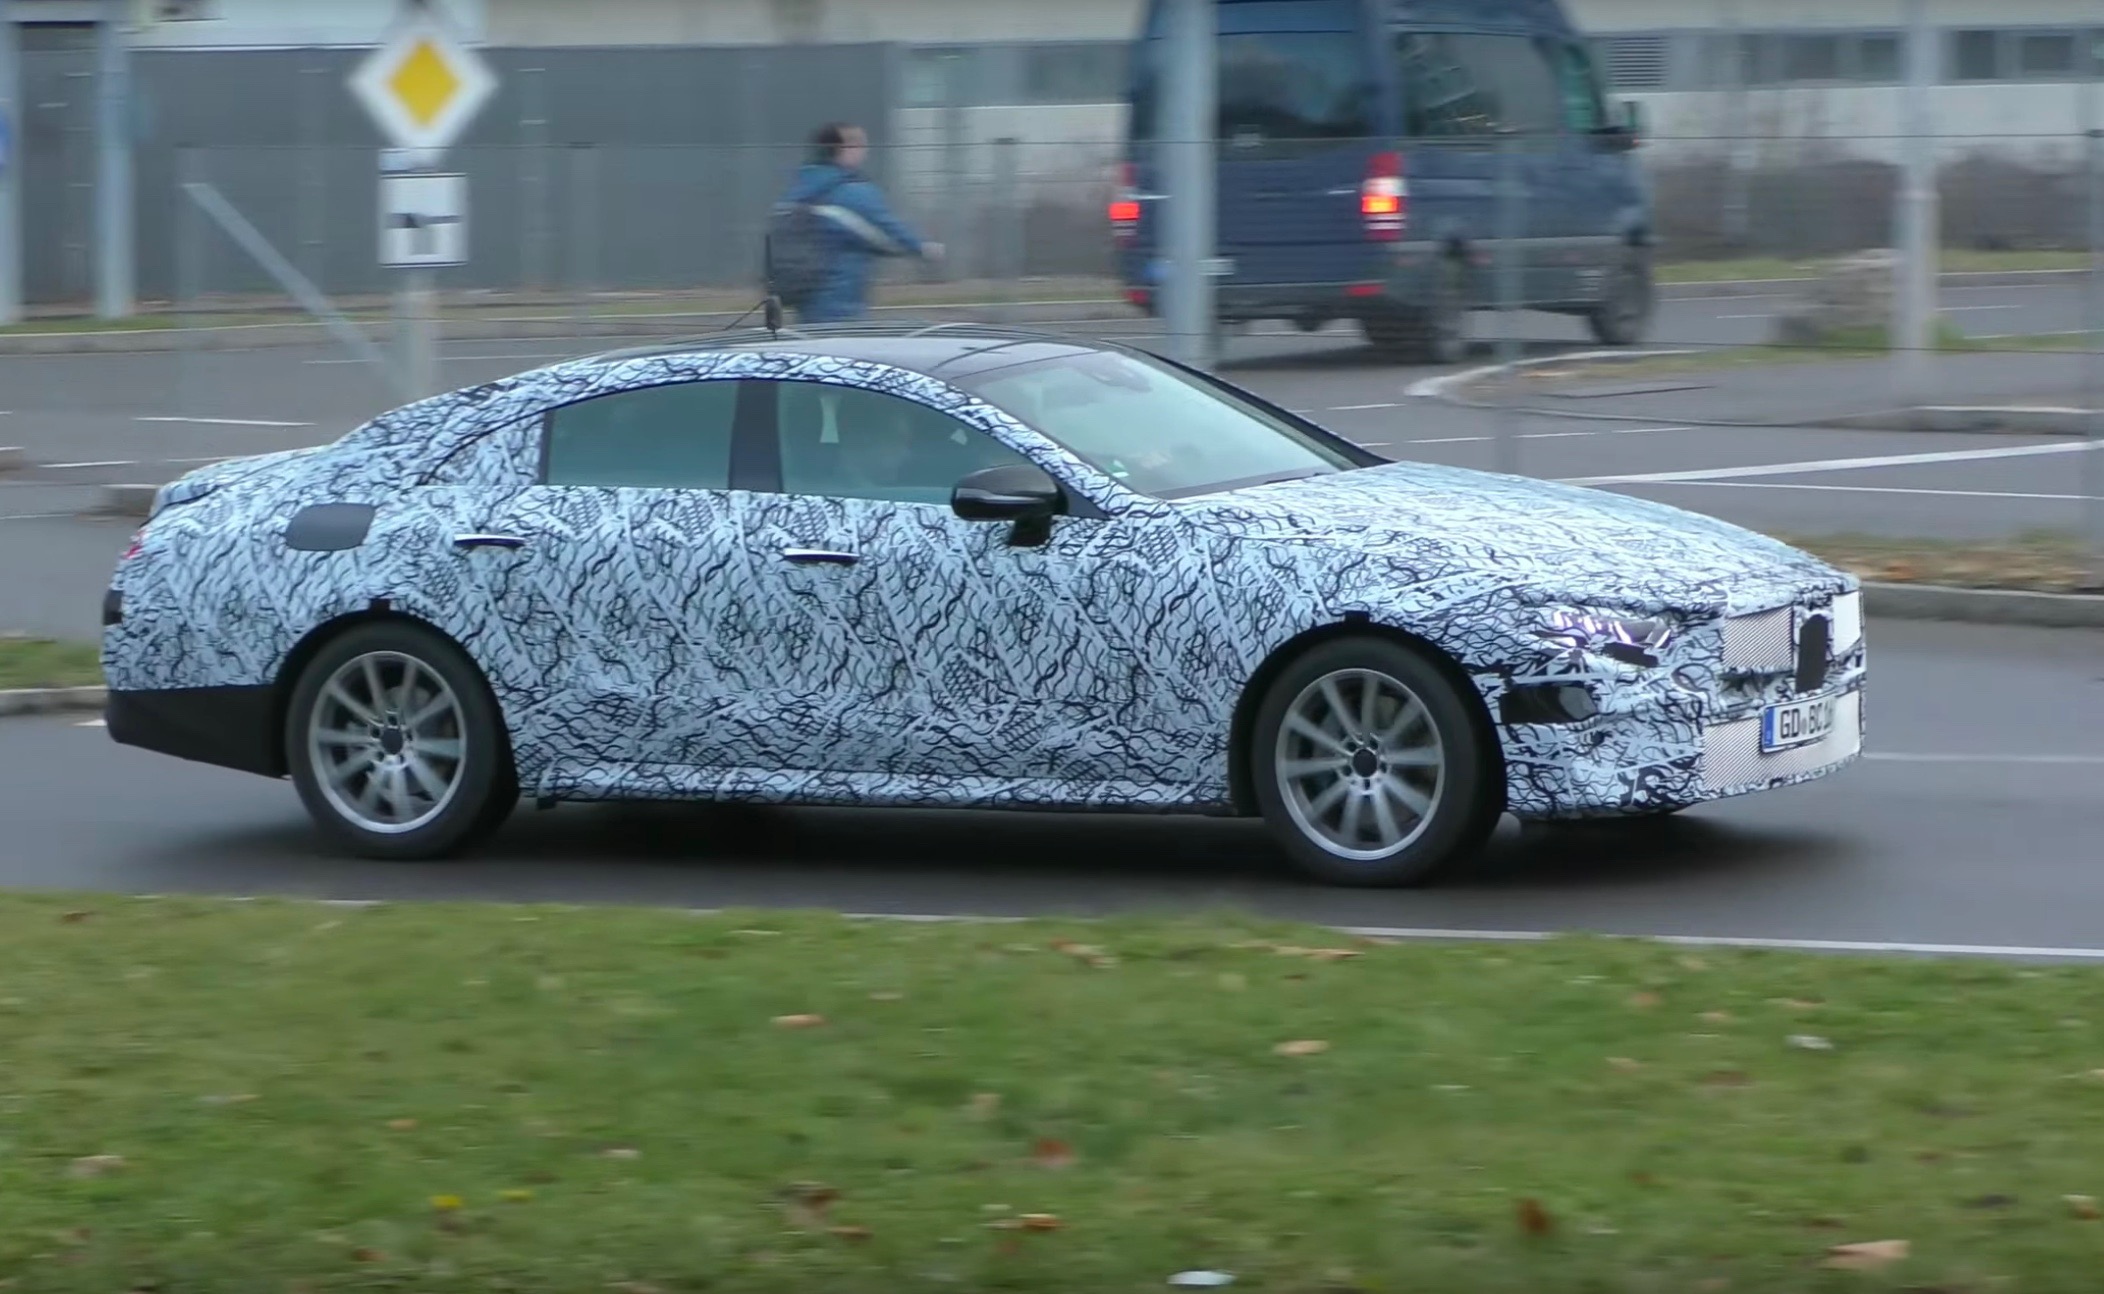 2018 mercedes benz cle prototypes spotted to replace cls for Mercedes benz cle